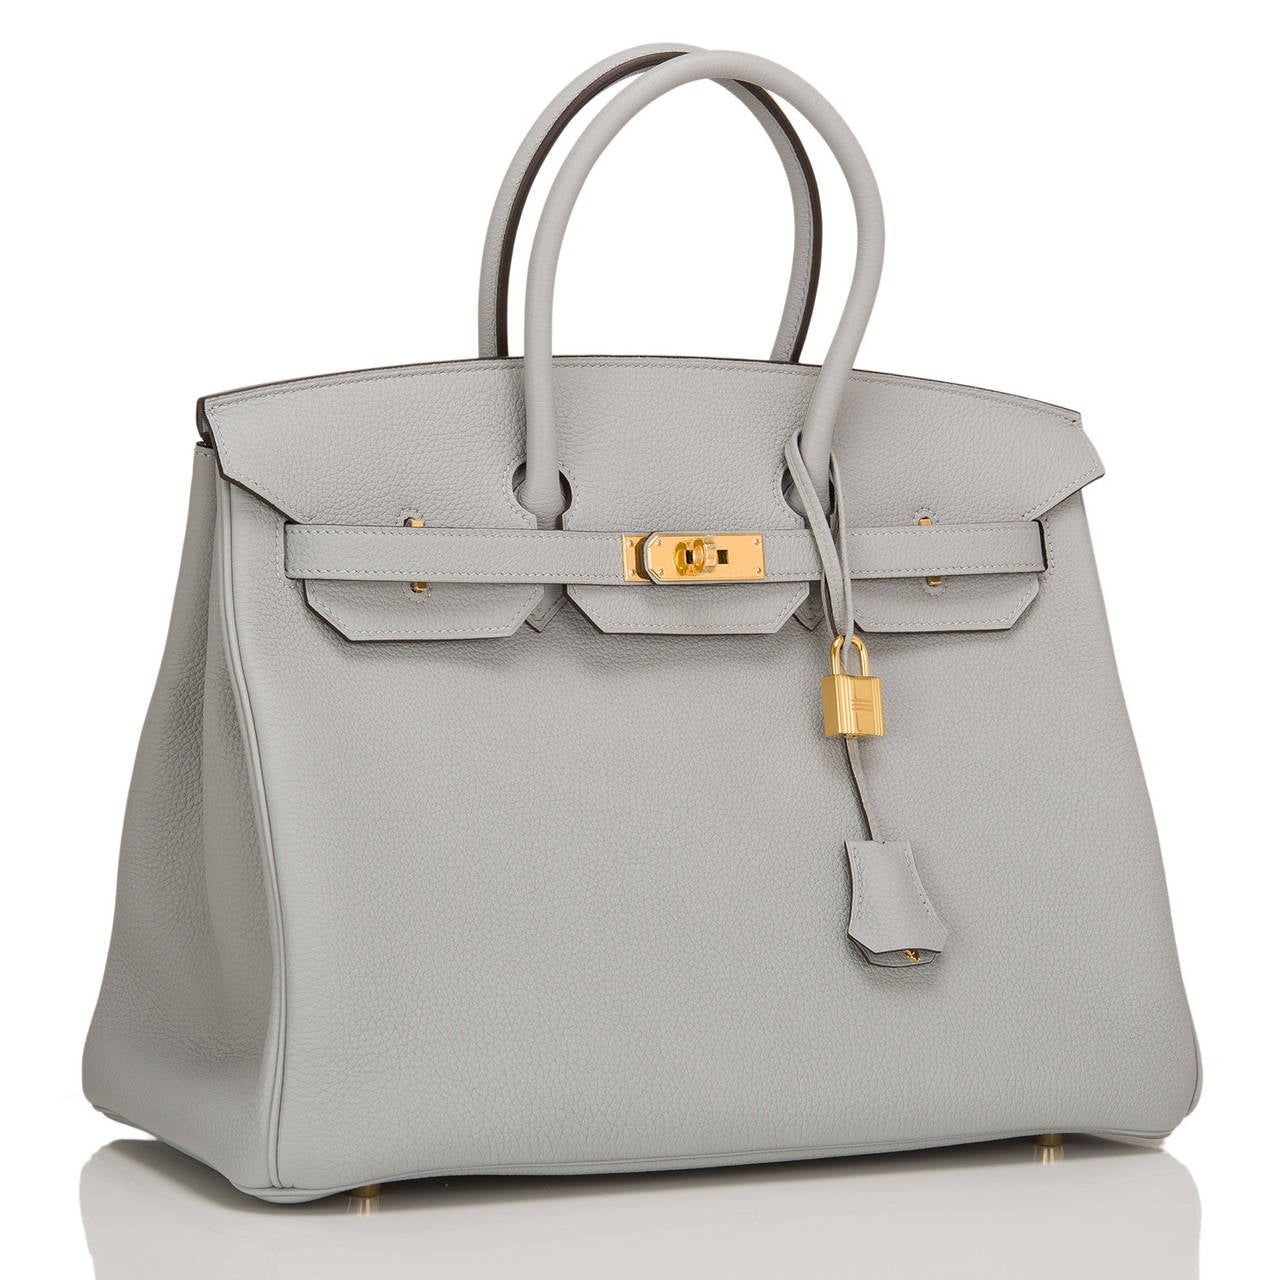 Hermes Blue Glacier Togo Birkin 35cm Gold Hardware In New never worn Condition For Sale In New York, NY